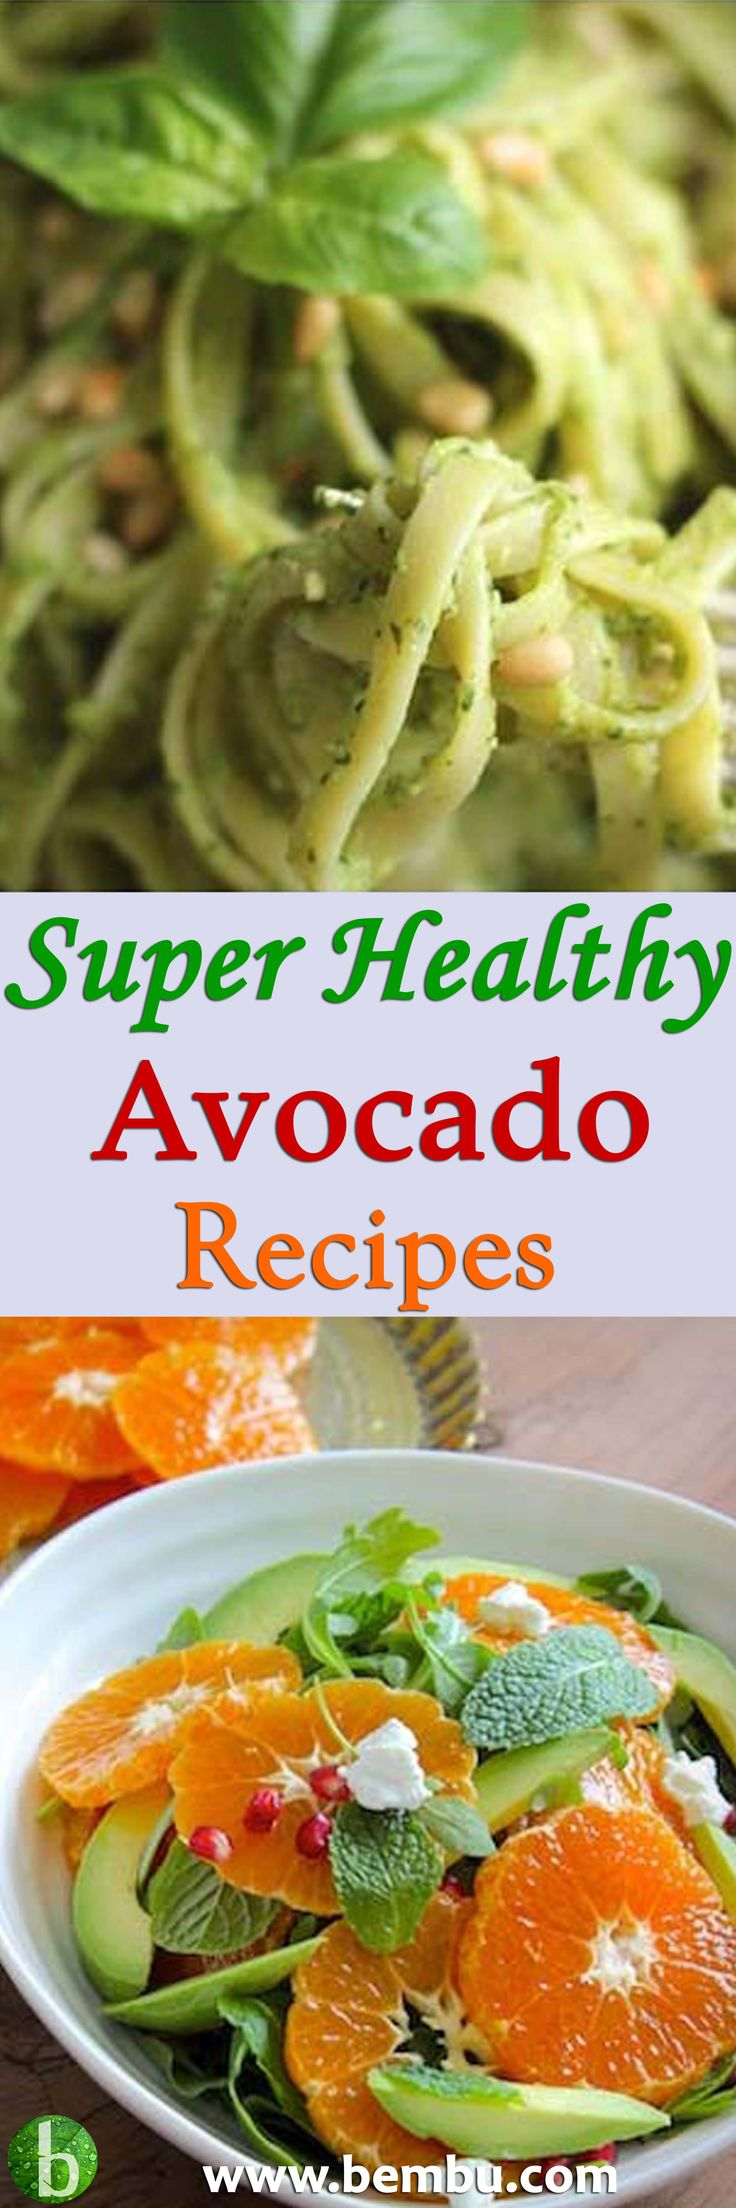 Look no further for the best avocado recipes to be found. Health Tips │ Health Ideas │Healthy Food │Health │Smoothie │Food │Desserts │Low Carb │Weight Loss │Diet │Fitness │Tea #Health #Ideas #Tips #Vitamin #Healthyfood #Food #Desserts #Smoothie #Lowcarb #Weightloss #Diet #Fitness #Tea